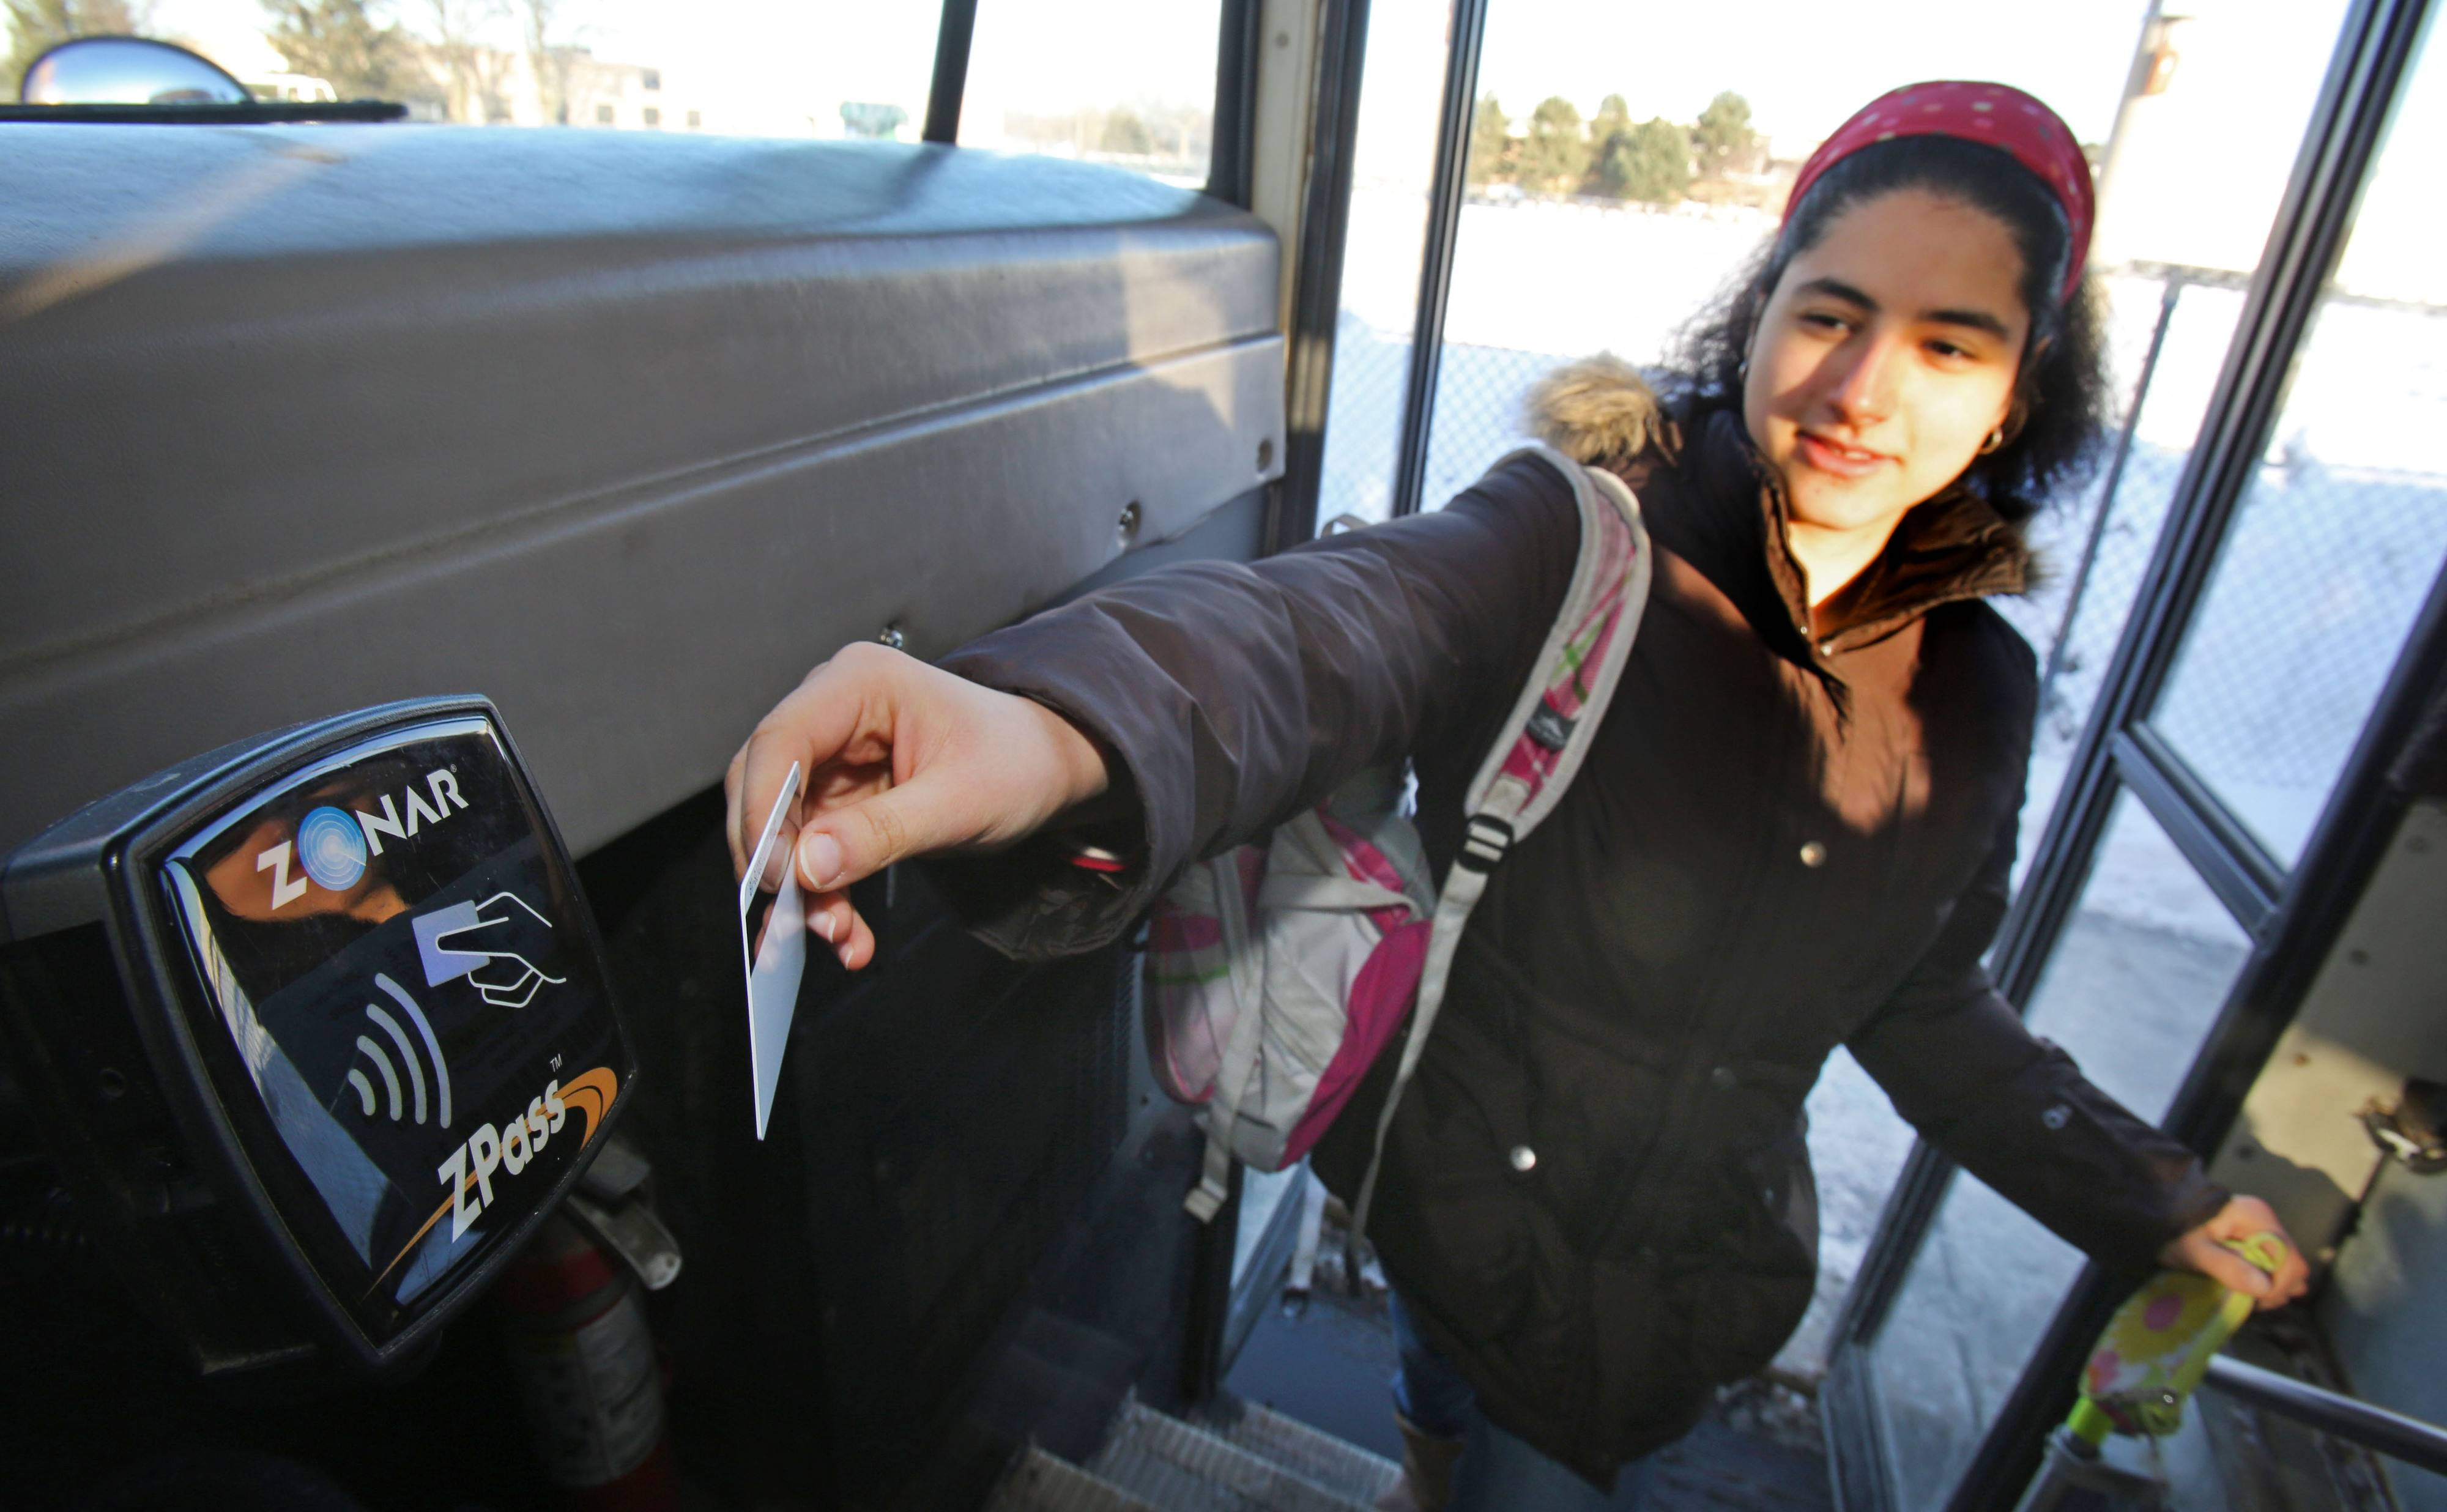 Seventeen-year-old Nilufar Jalali of Vernon Hills swipes her school ID card on ZPass scanner as she gets on the bus at Stevenson High School in Lincolnshire Monday.